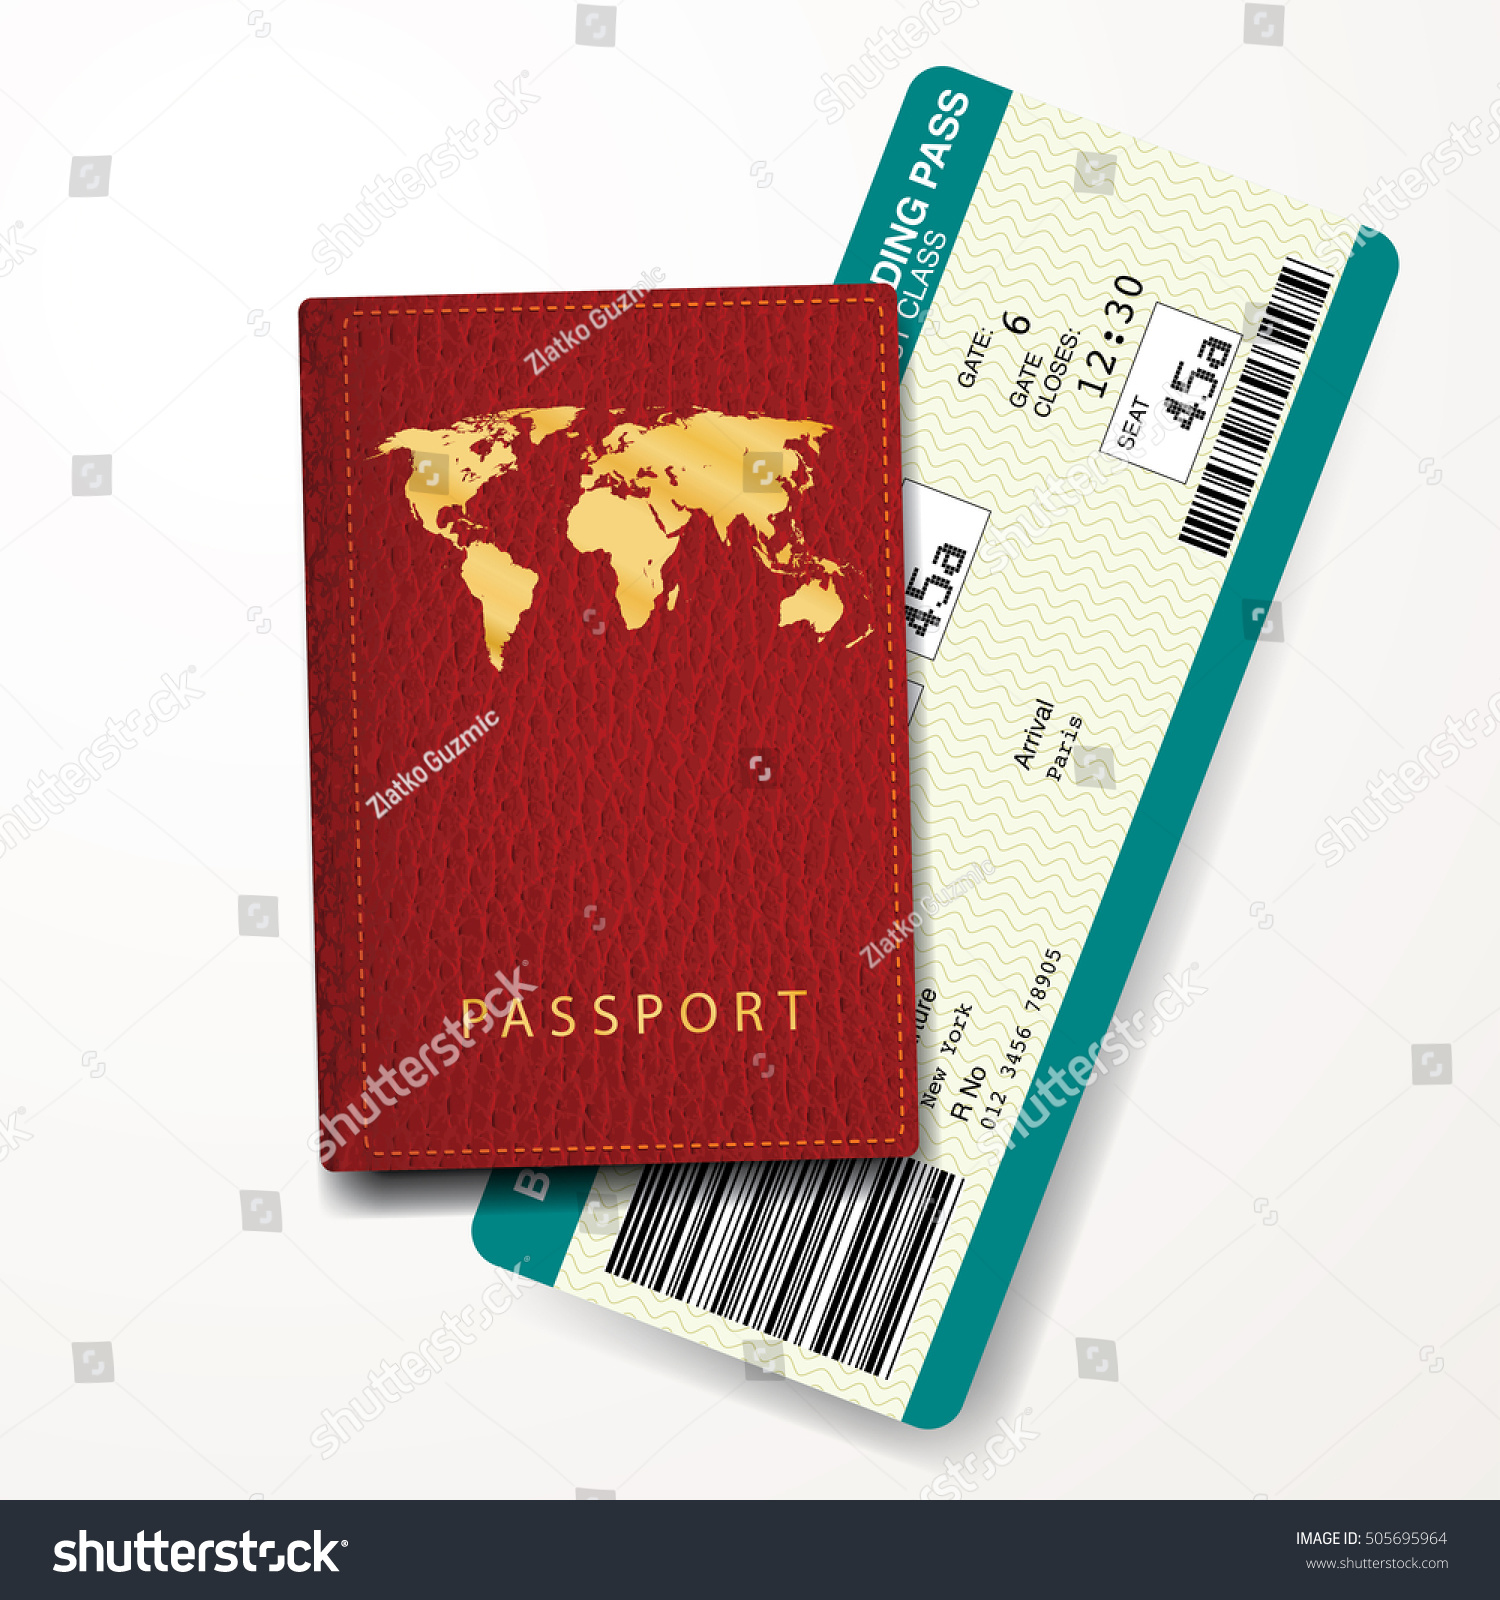 red passport cover with boarding pass vector illustration Paris New York ticket